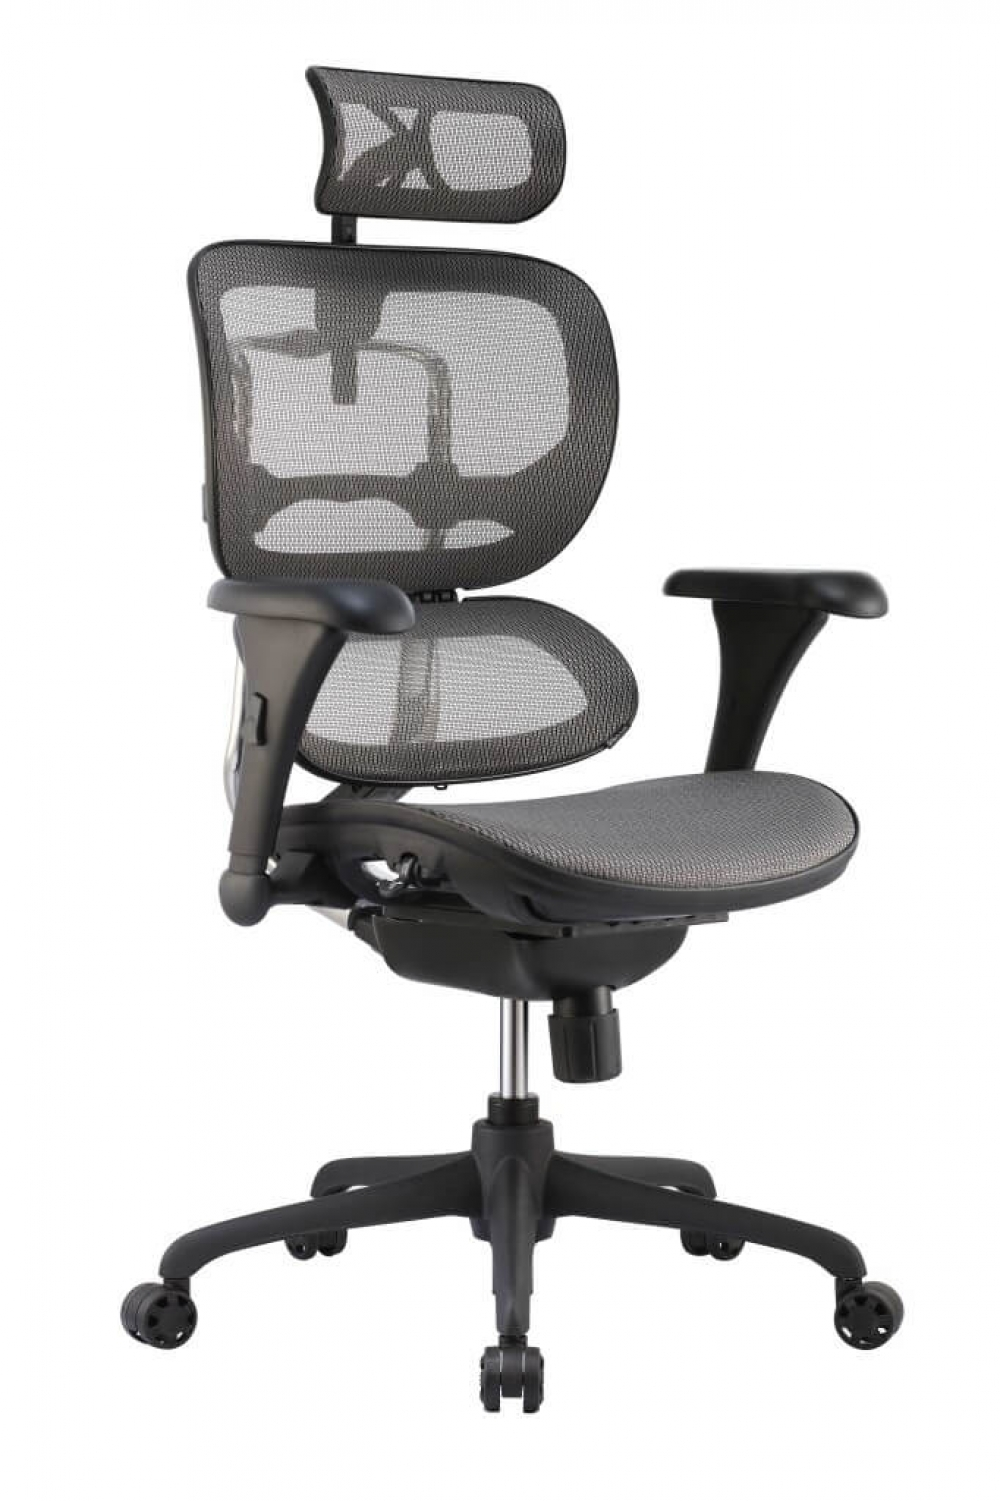 office-furniture-chairs-high-back-office-chairs.jpg